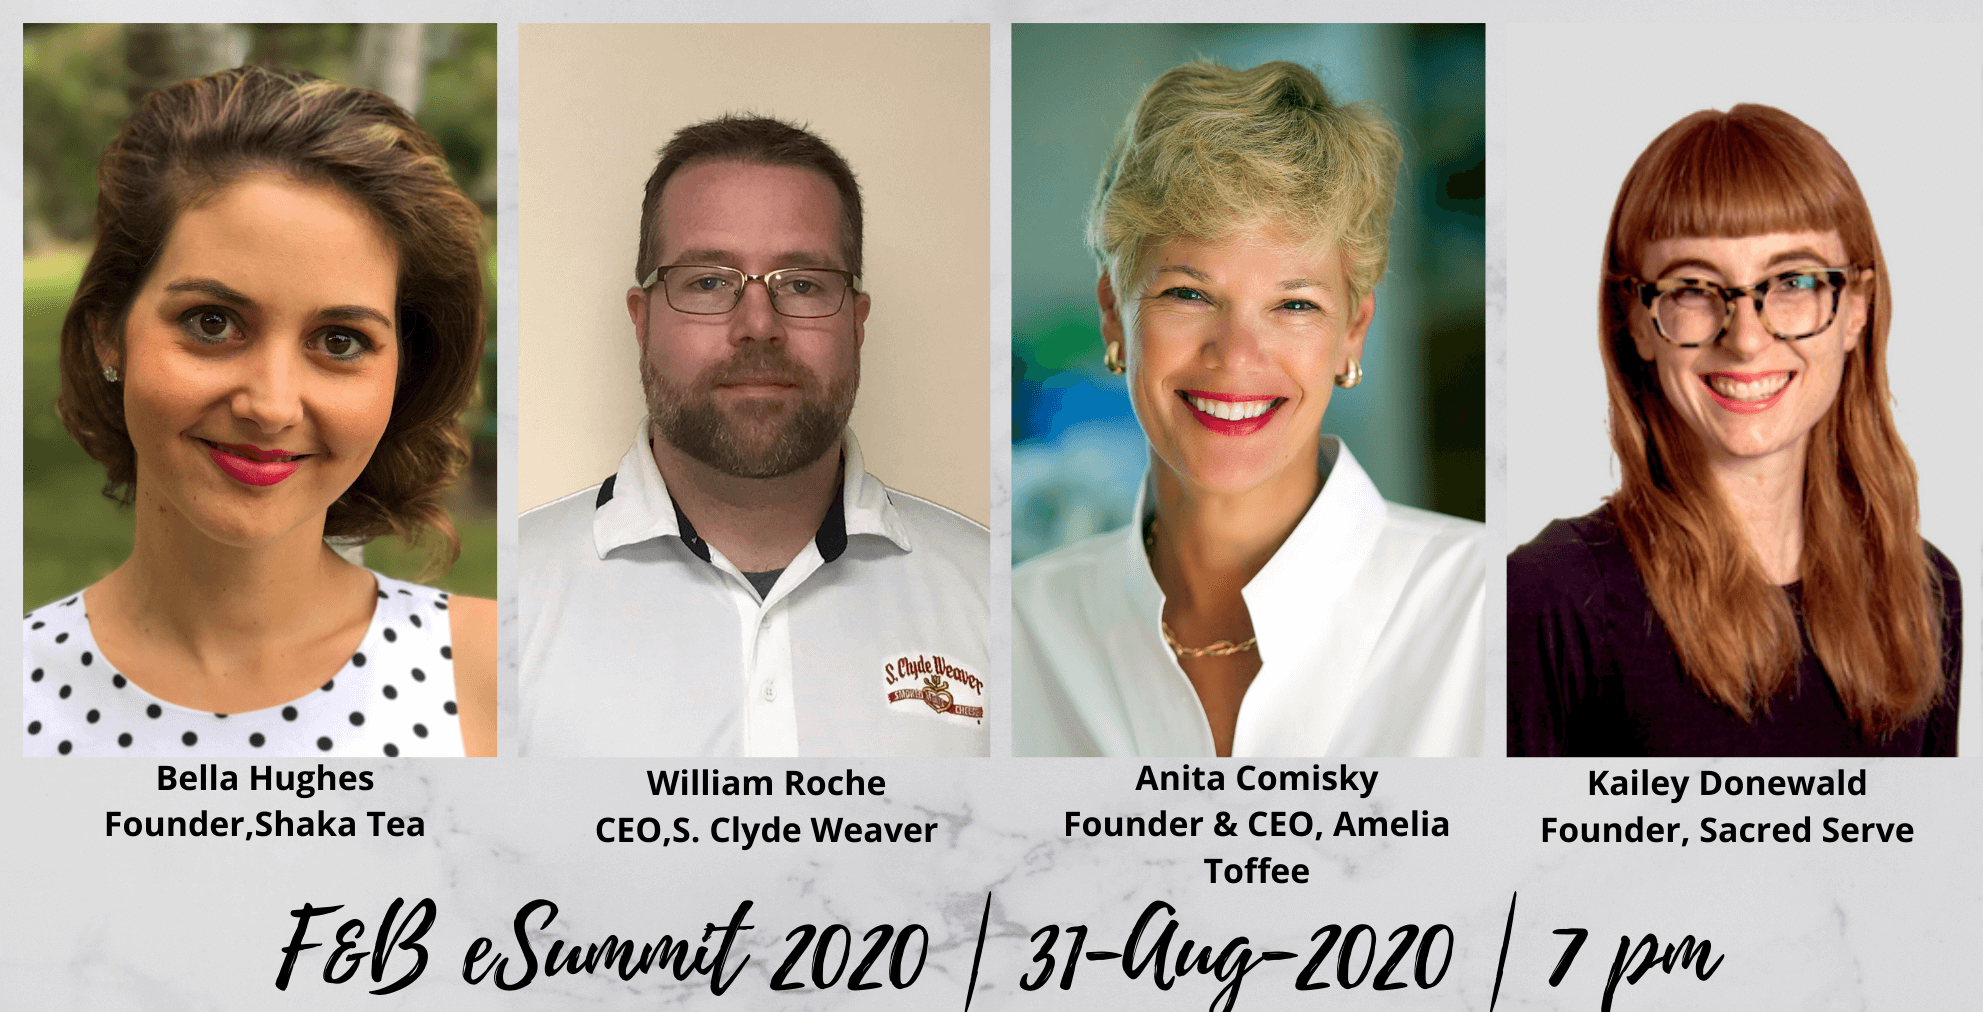 Day 6 – Session 1: F&B e-Summit 2020 (Aug 31st, 2020)